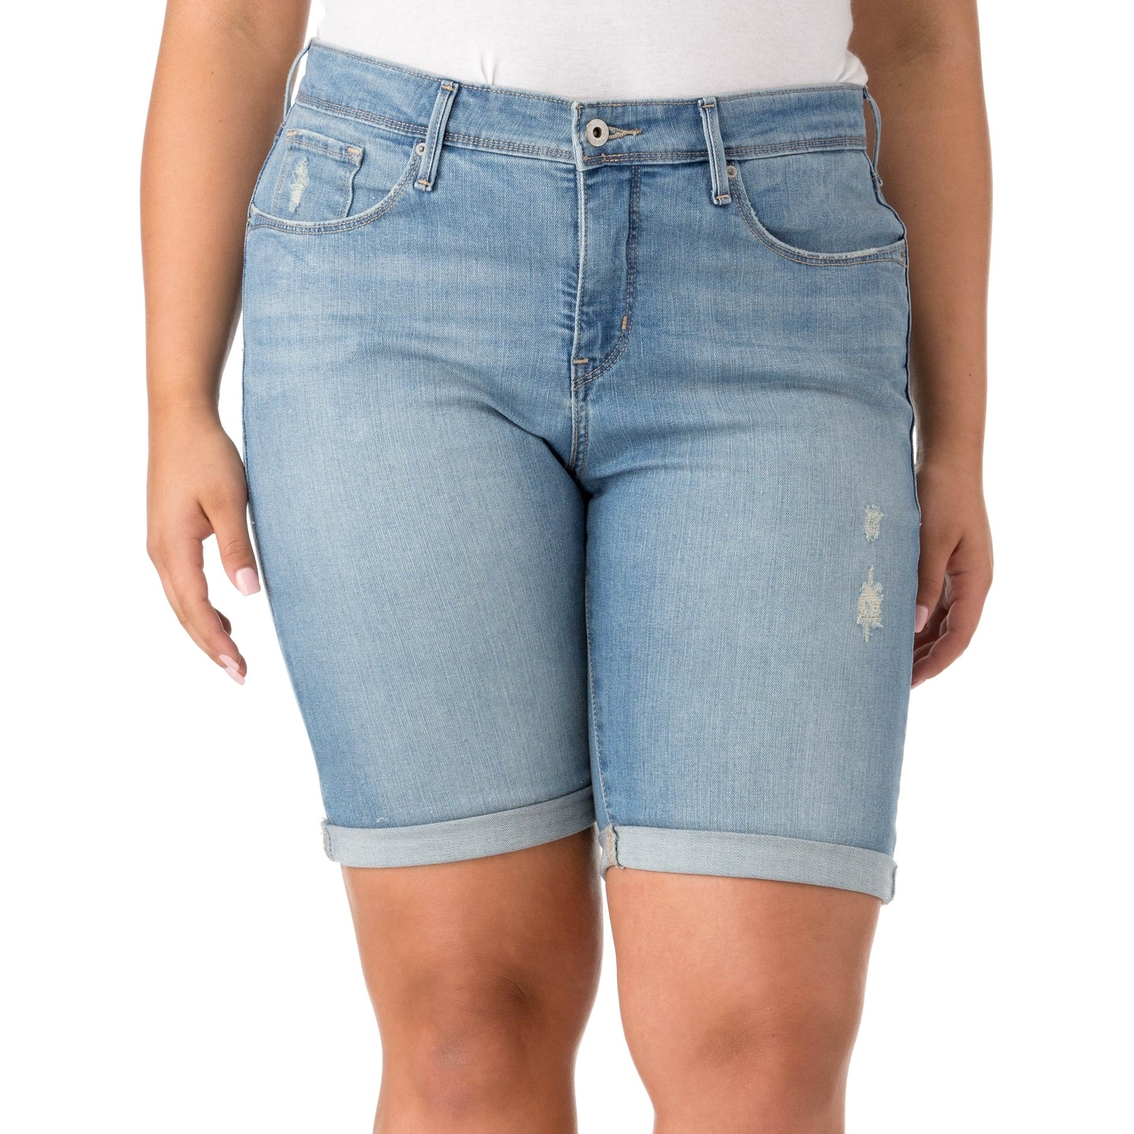 807647de Levi's Plus Size 512 Perfectly Shaping Bermuda Shorts | Shorts ...